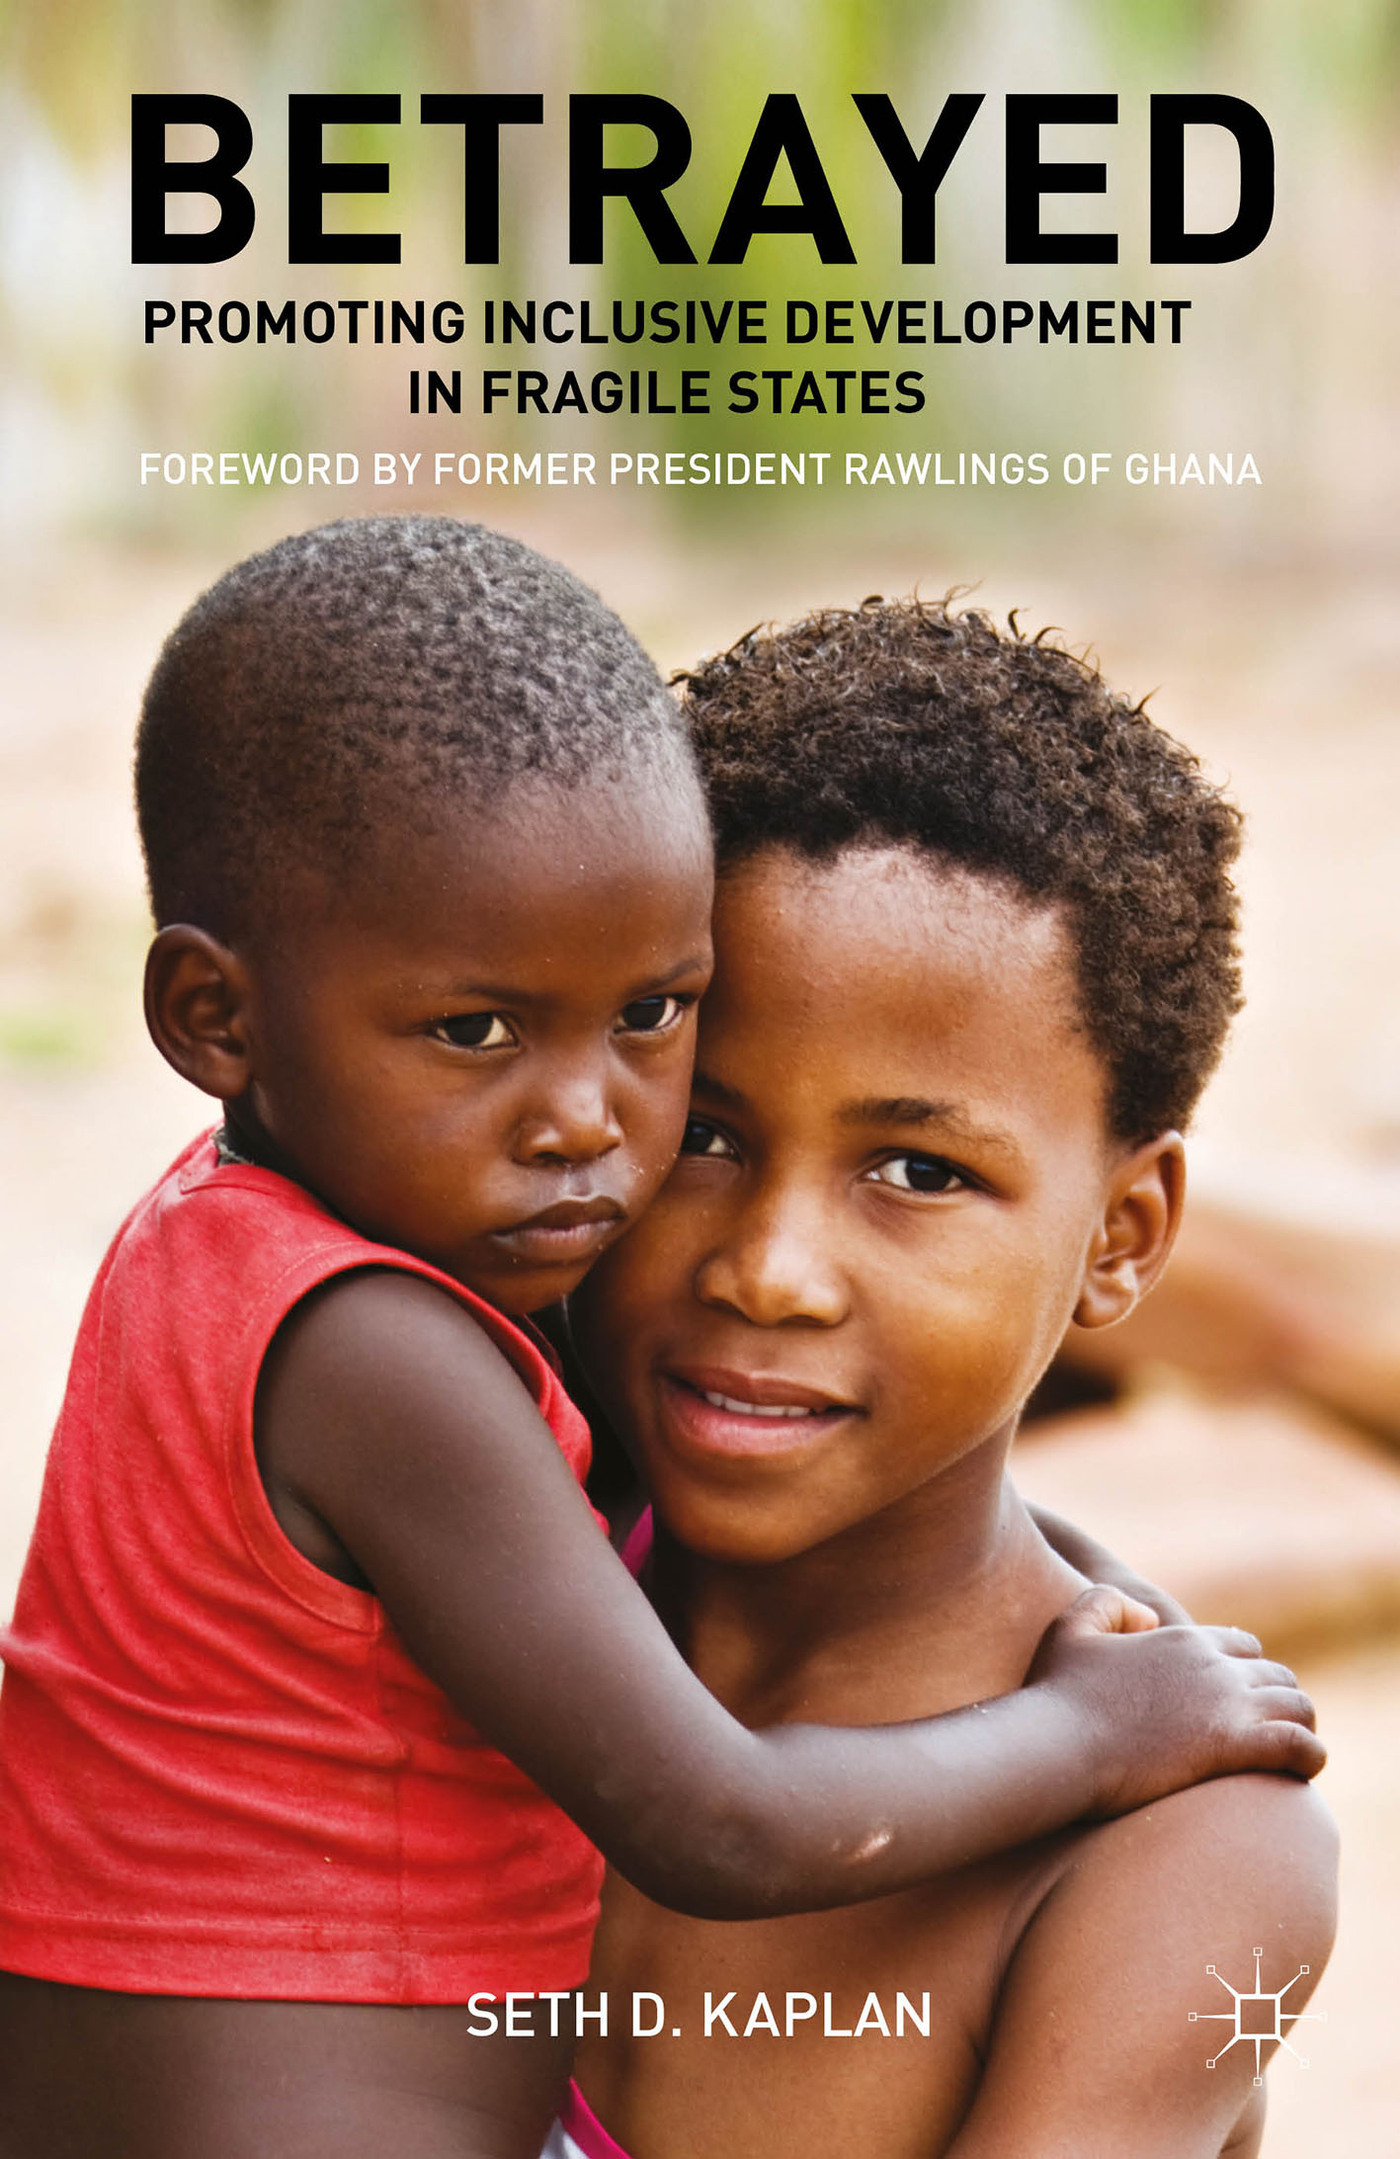 Betrayed: Promoting Inclusive Development in Fragile States Seth D. Kaplan